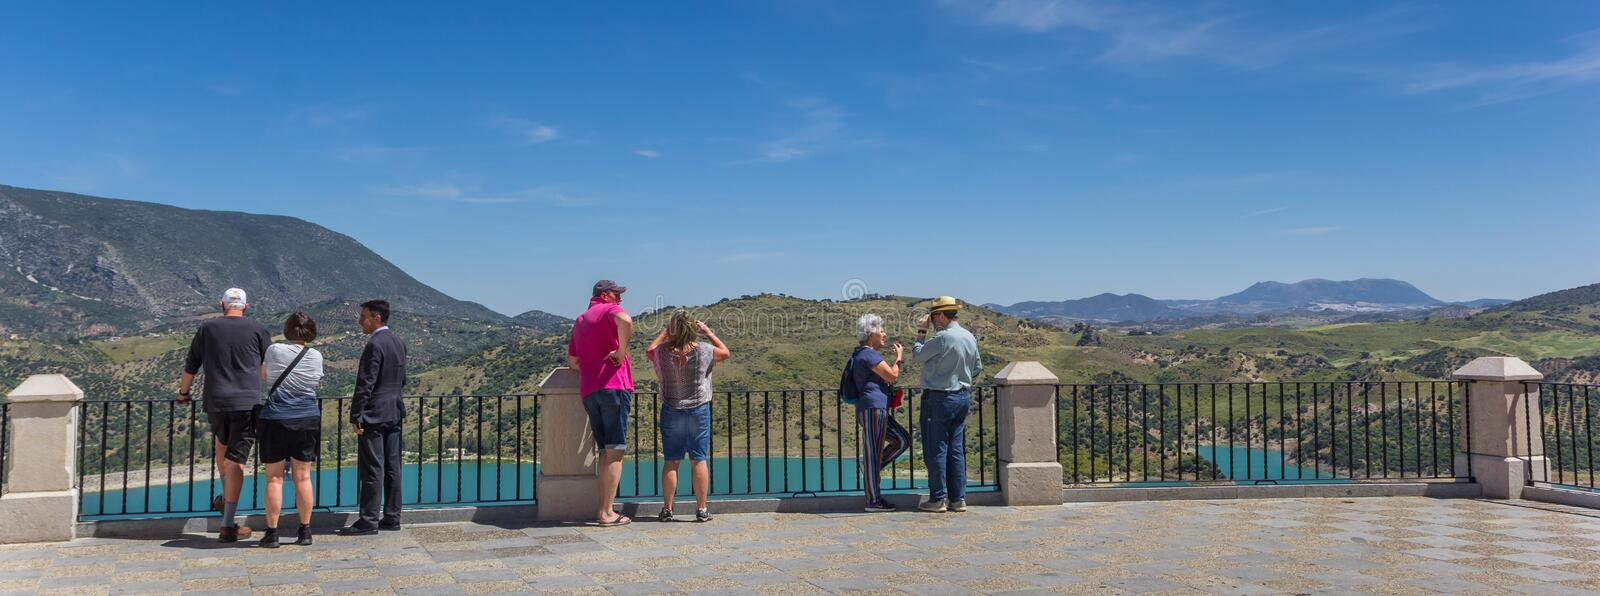 Panorama of people looking out over the turquoise lake in Zahara royalty free stock image